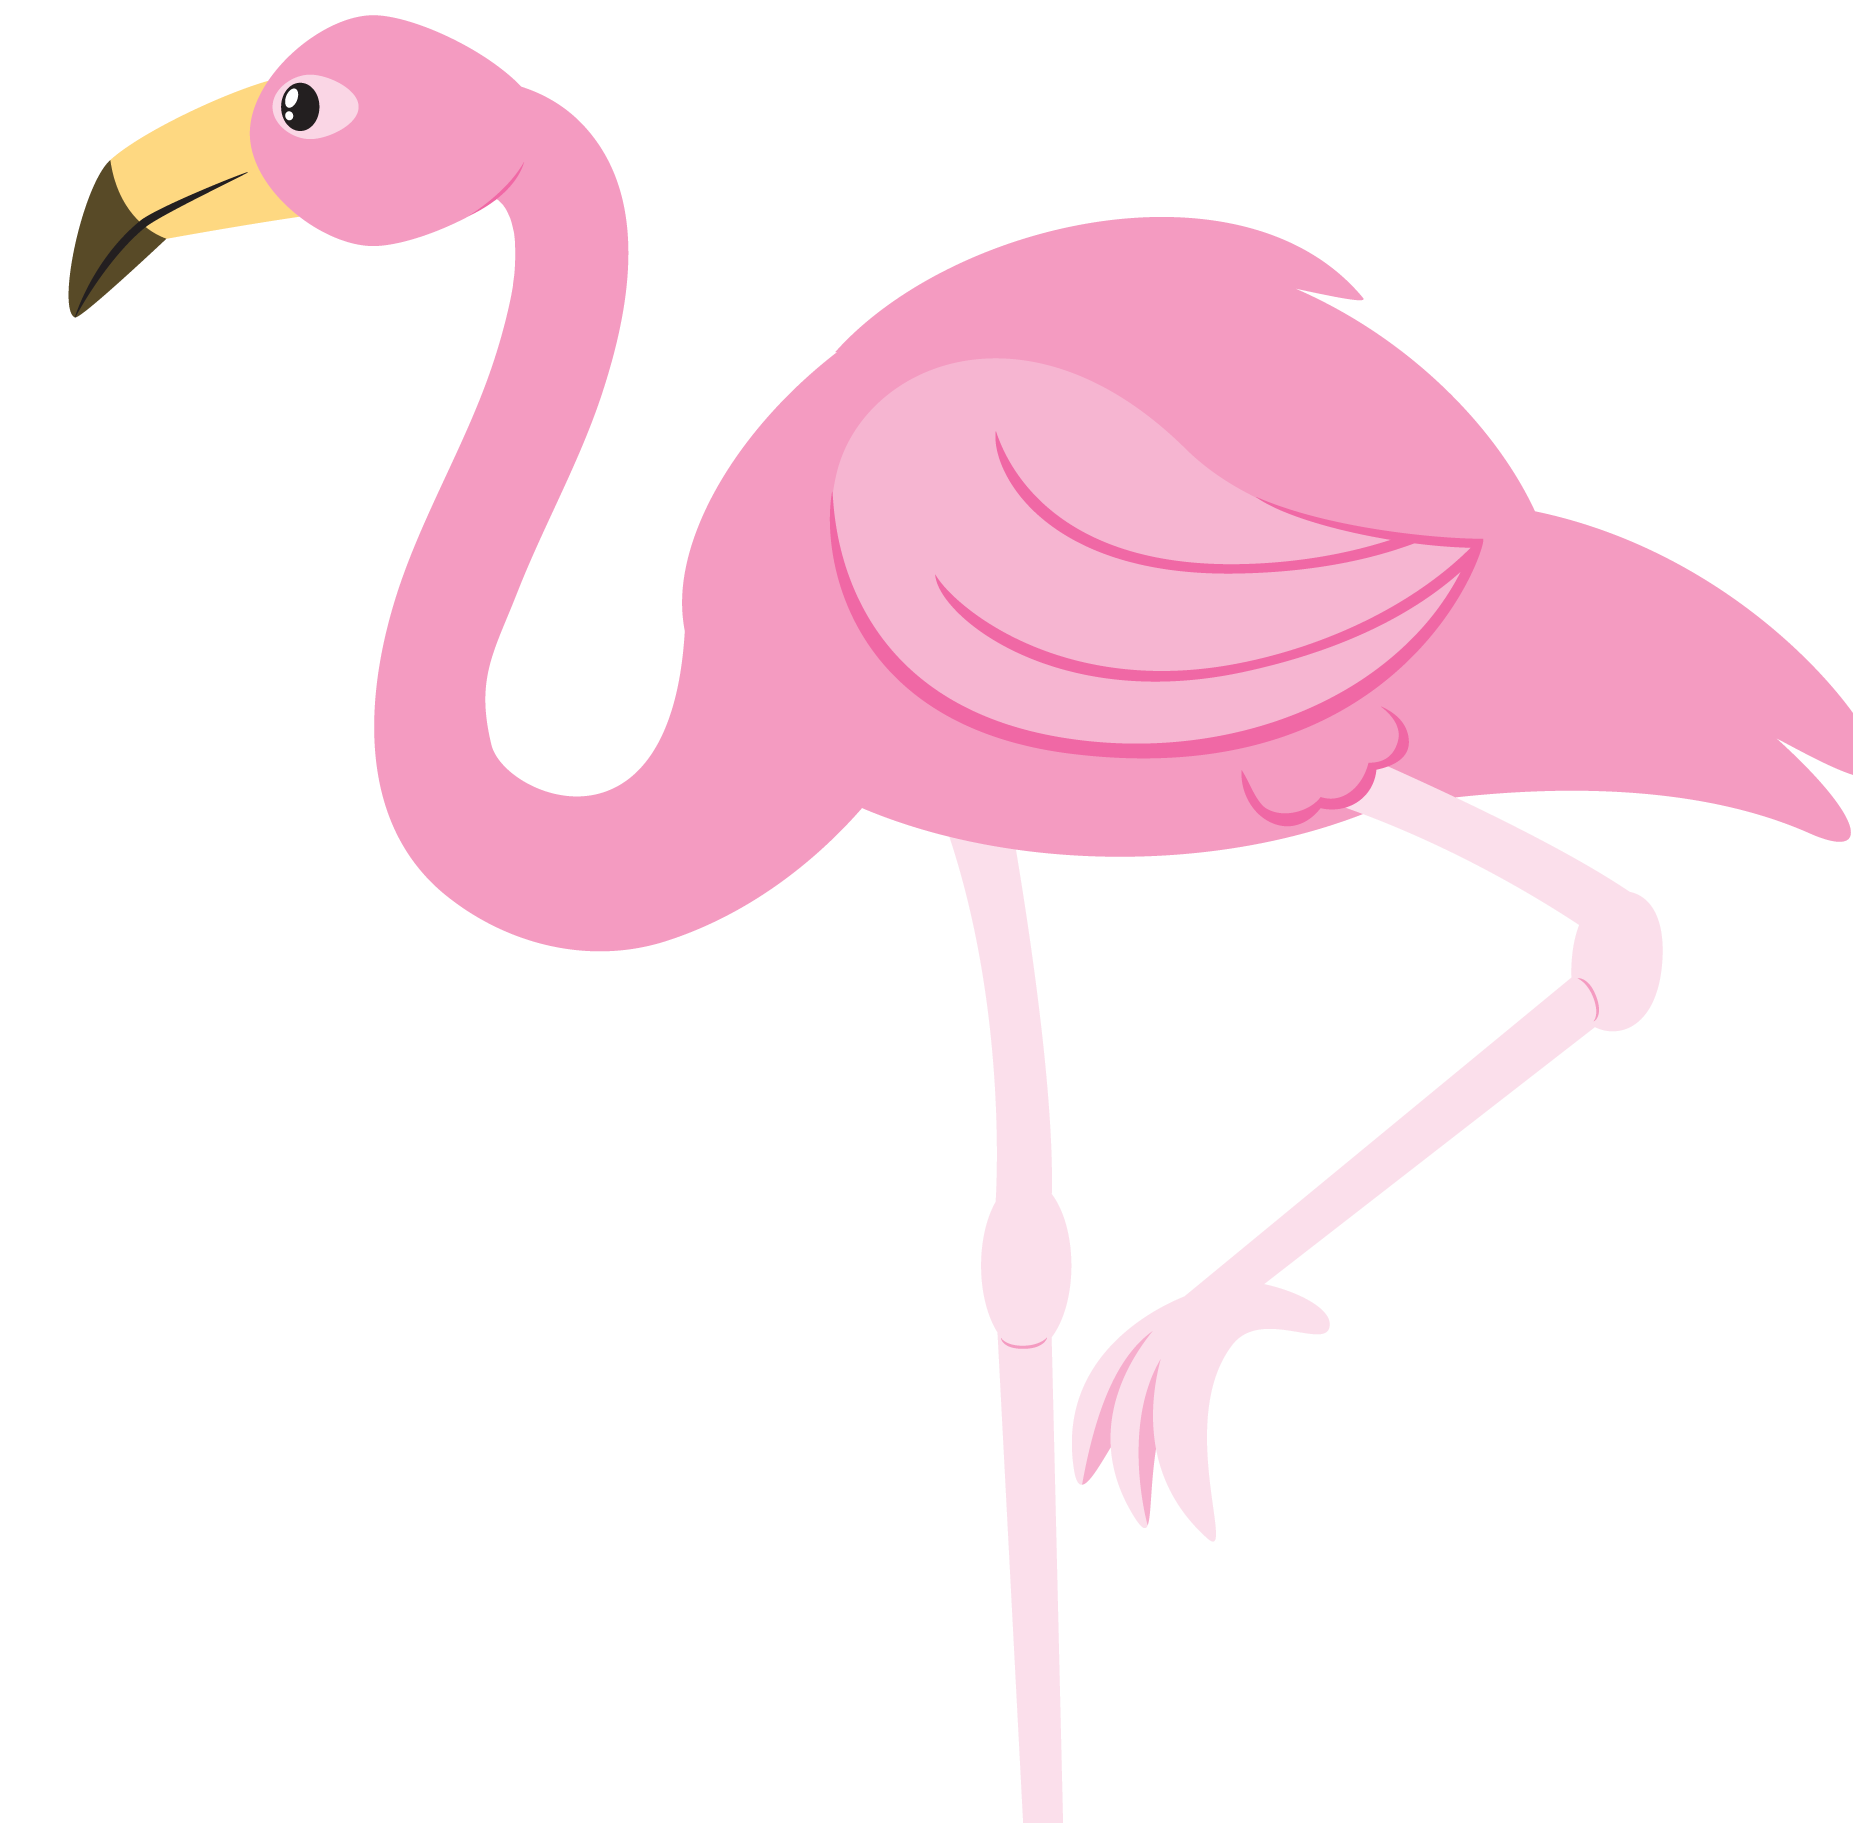 flamingo clip art saferbrowser yahoo image search results pool rh pinterest com flamingo clipart black and white clipart flamingo free